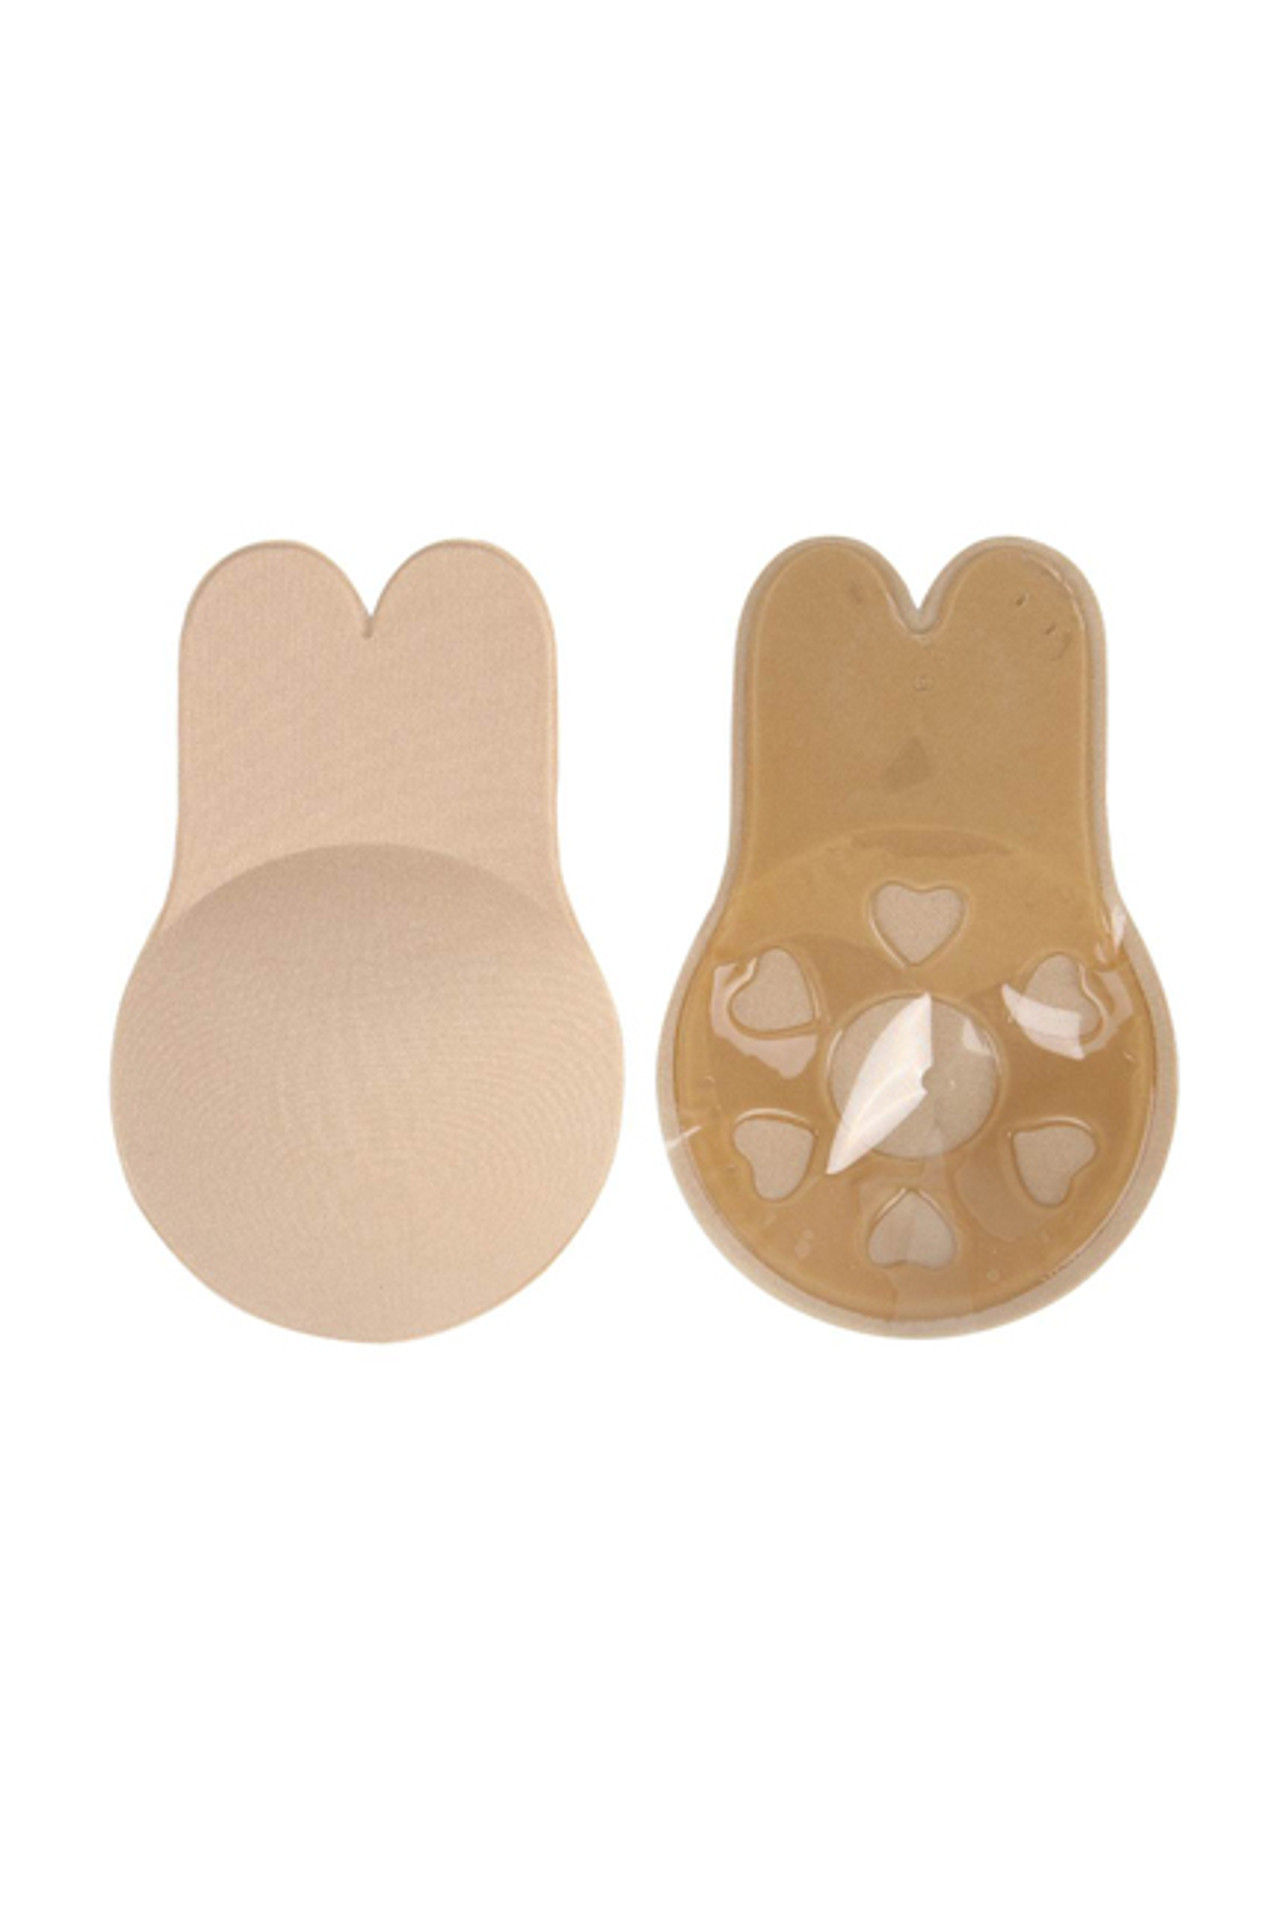 Breathable Bunny Bust Lift Push Up Nipple Covers